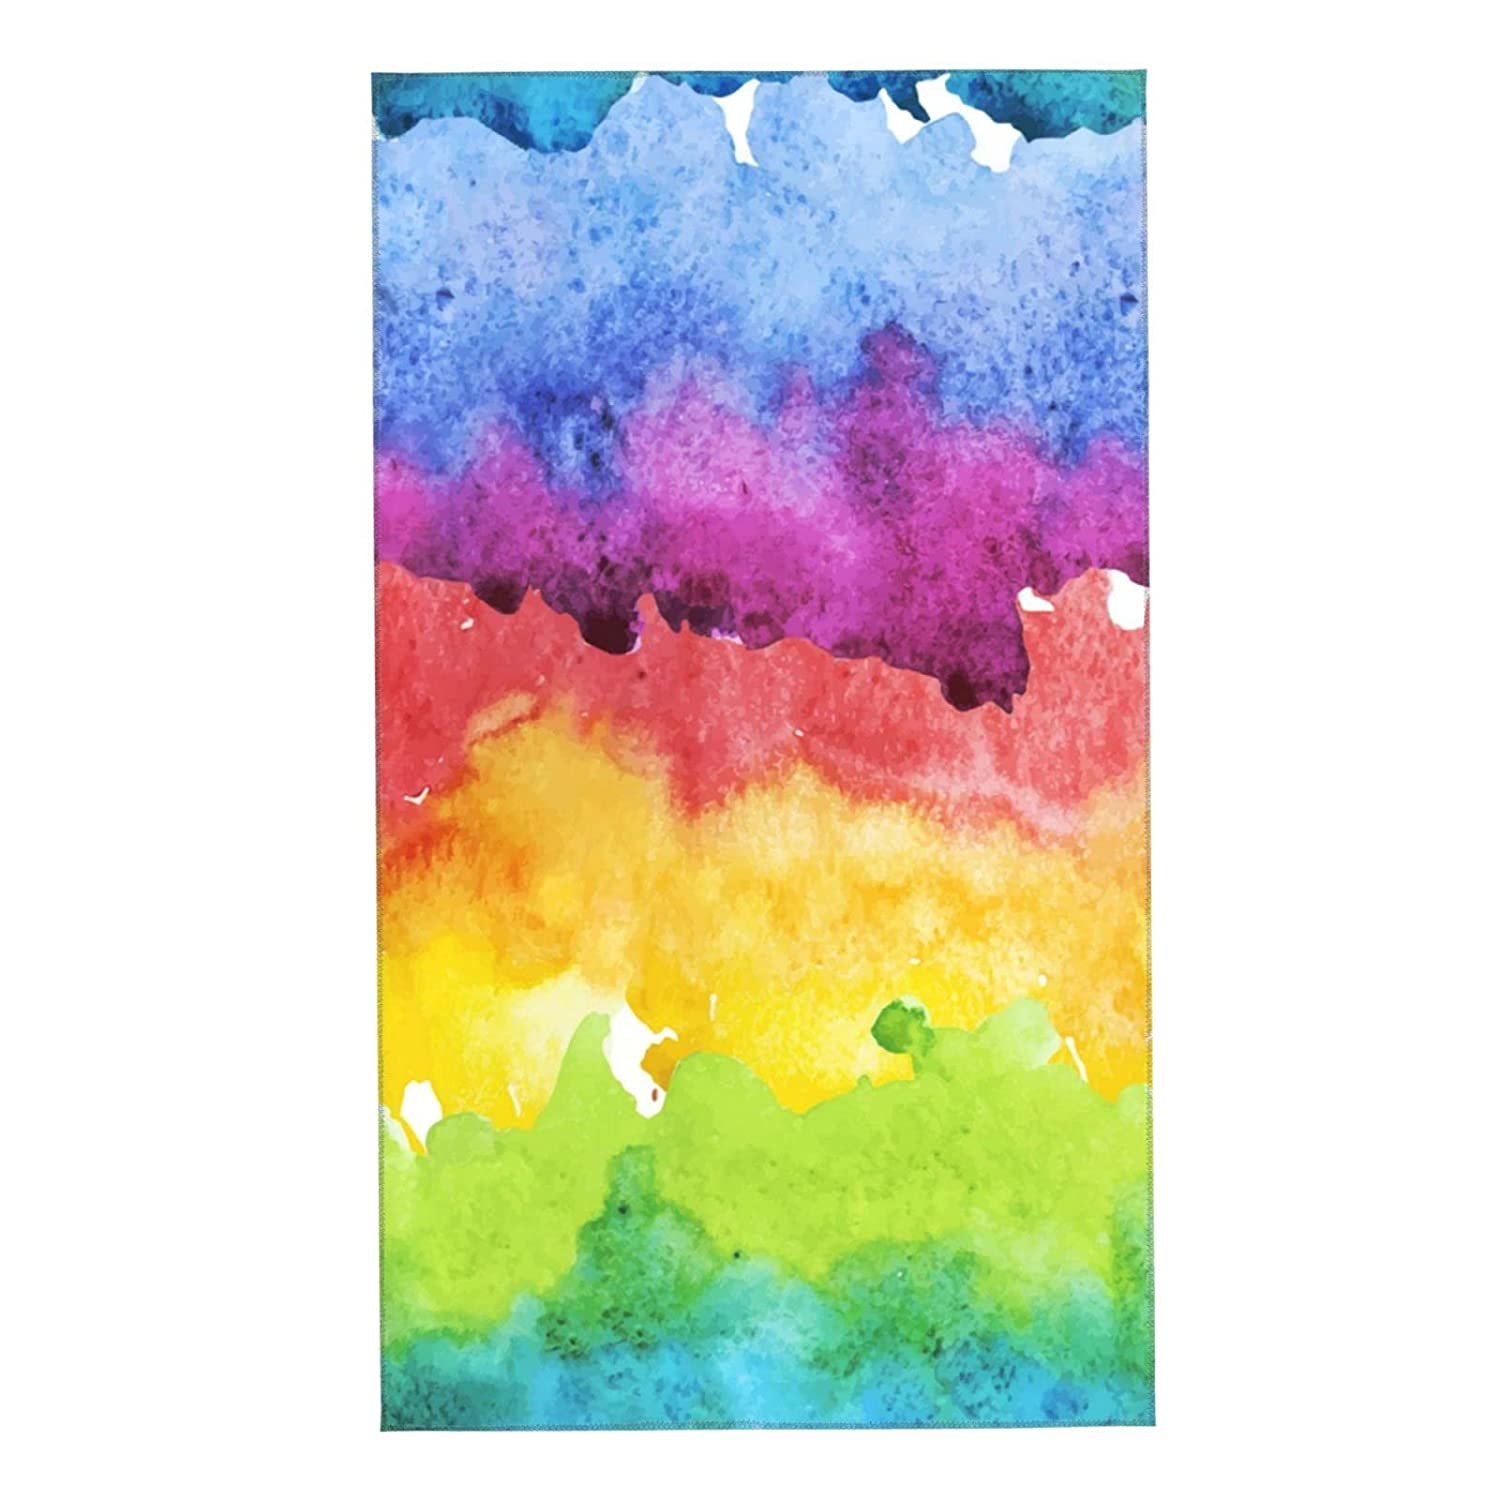 Gorgeous Colorful Abstract Painting Contrasting Towels Soft In a popularity Face Mi Cloth